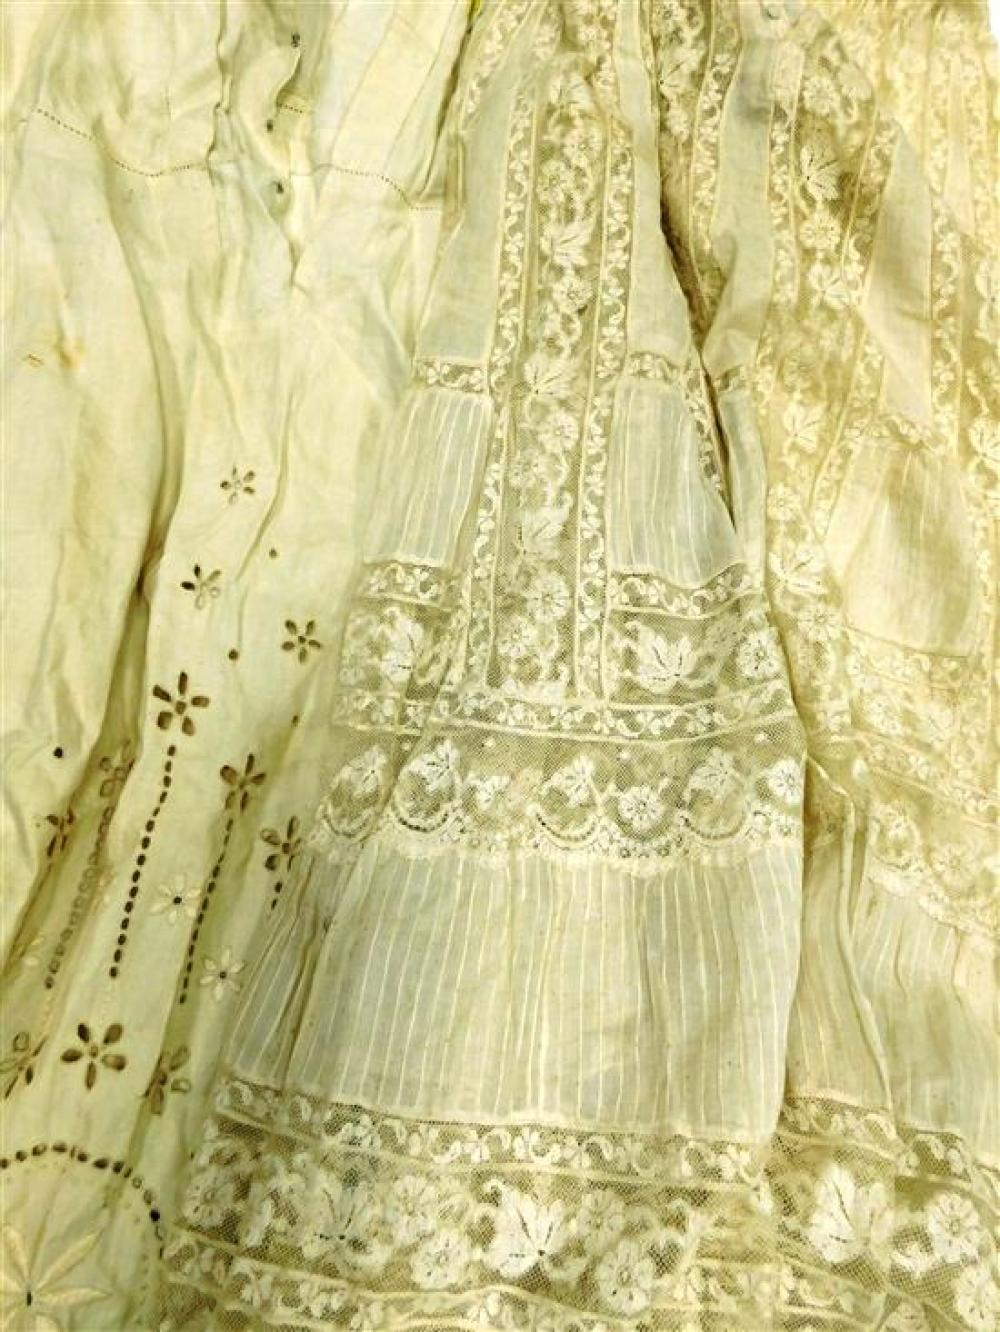 Four Edwardian cotton and lace dresses, wear consistent with age and use including toning, damages, loss, and staining, sold as-is.